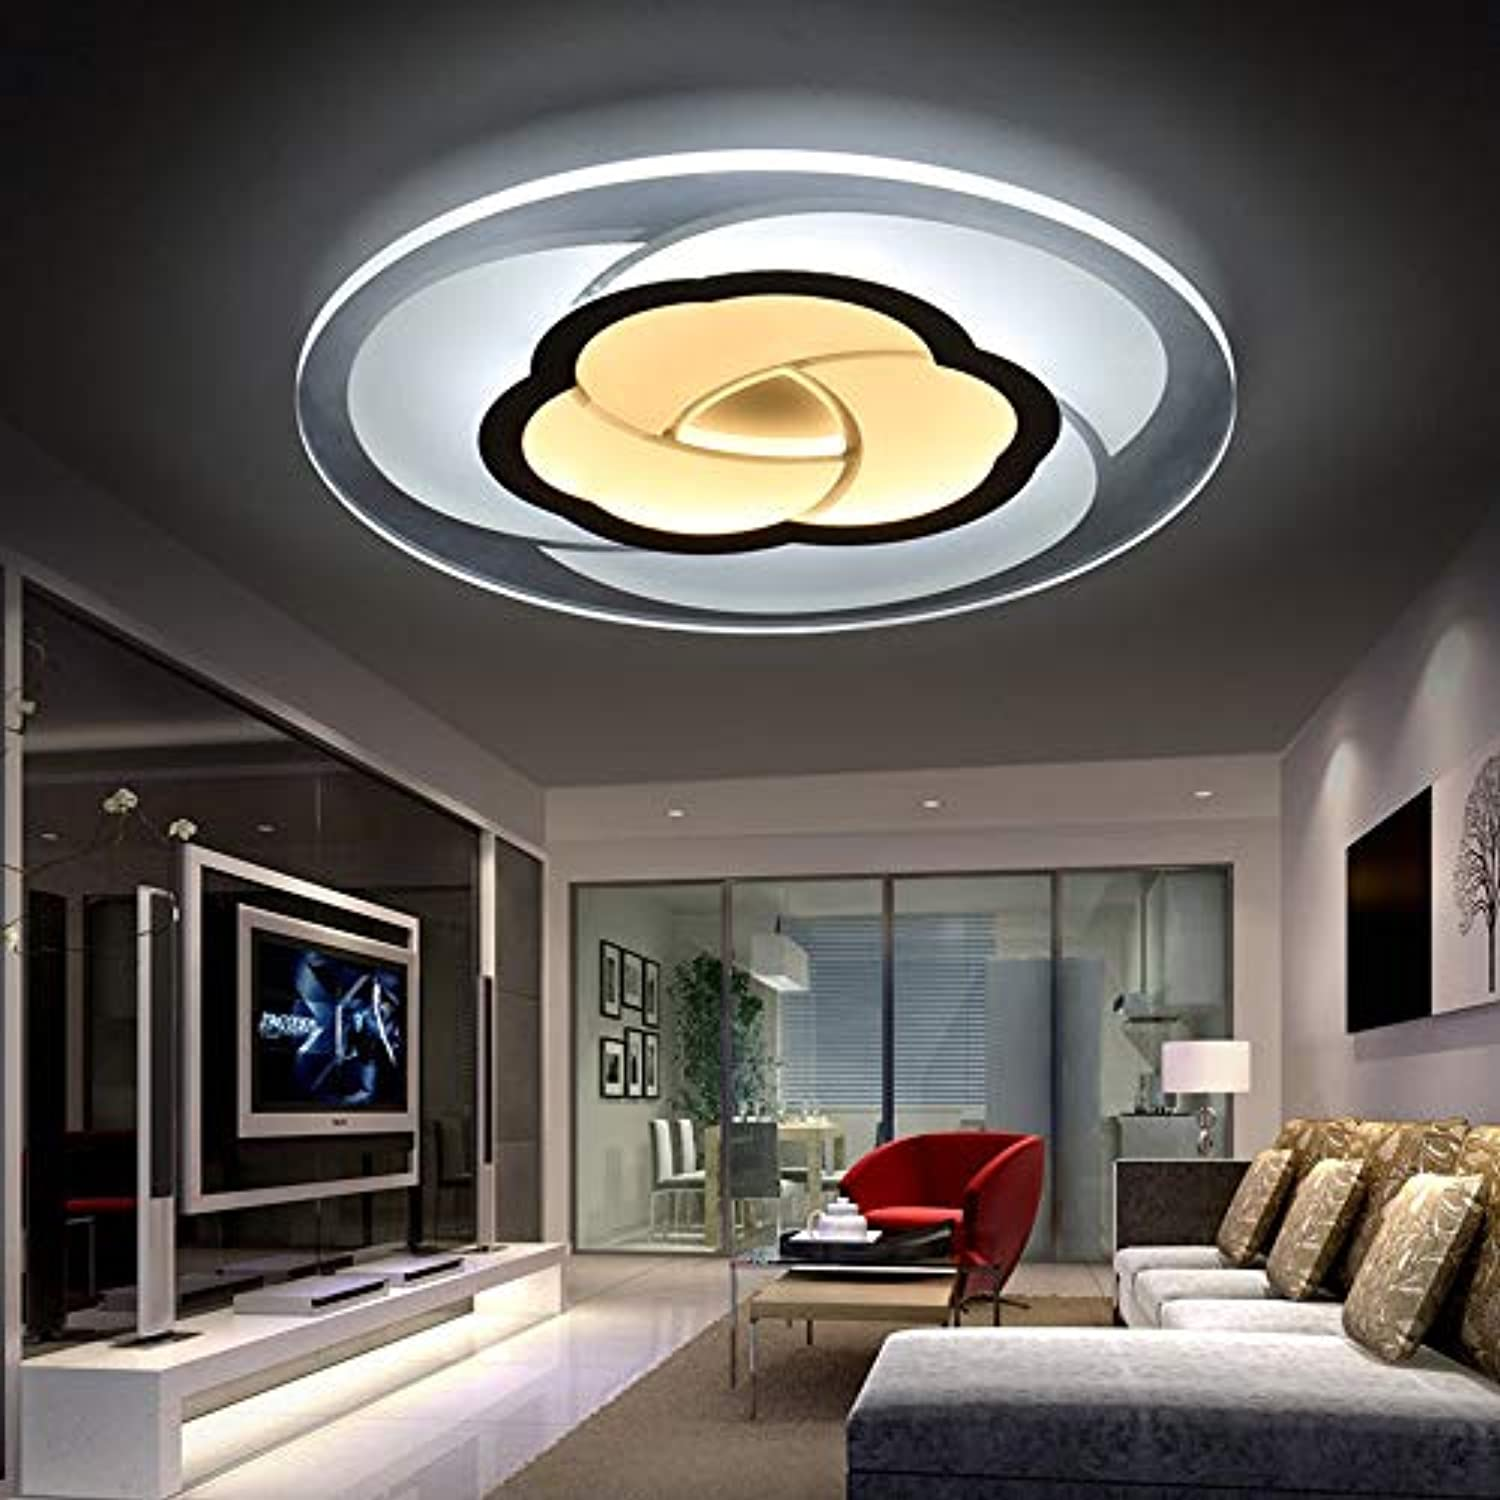 Moderne 85-265V Joeyhome Led Küche Warmwei D200MM, Luxus ...